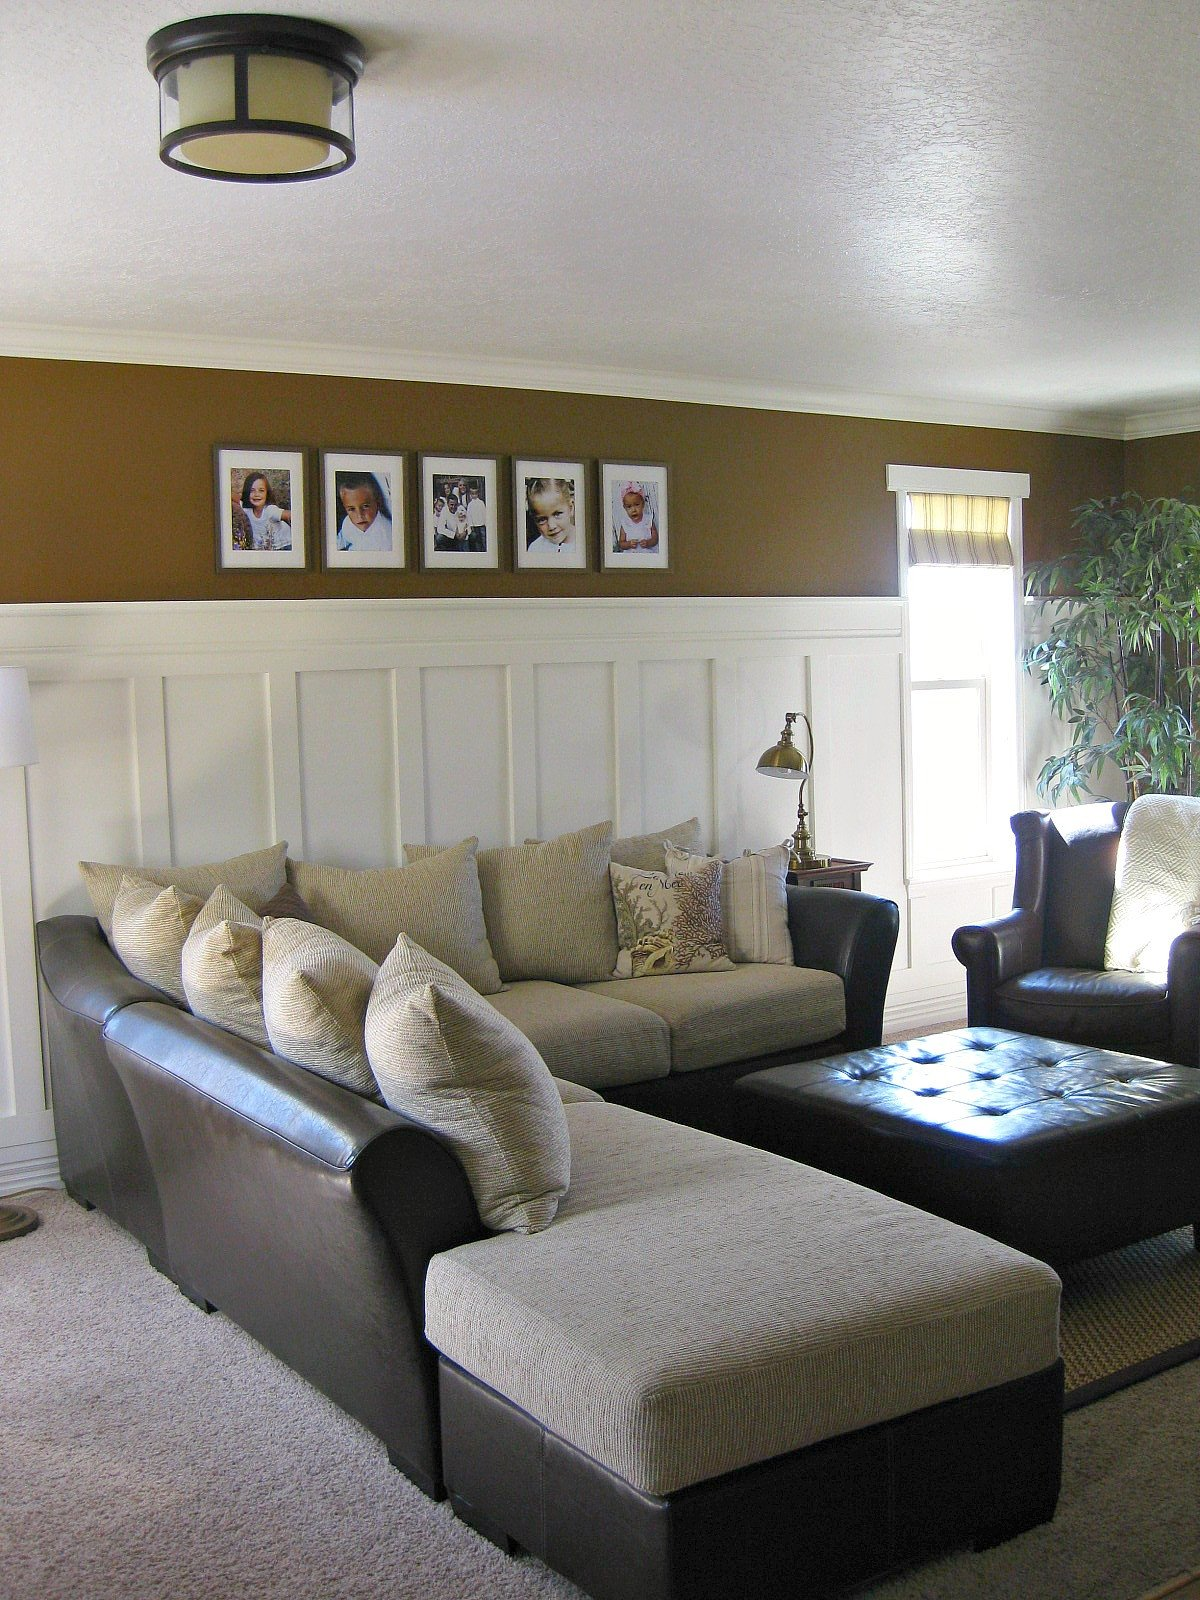 Decor for Living Room Wall Lovely Tda Decorating and Design Board & Batten Accent Wall Tutorial